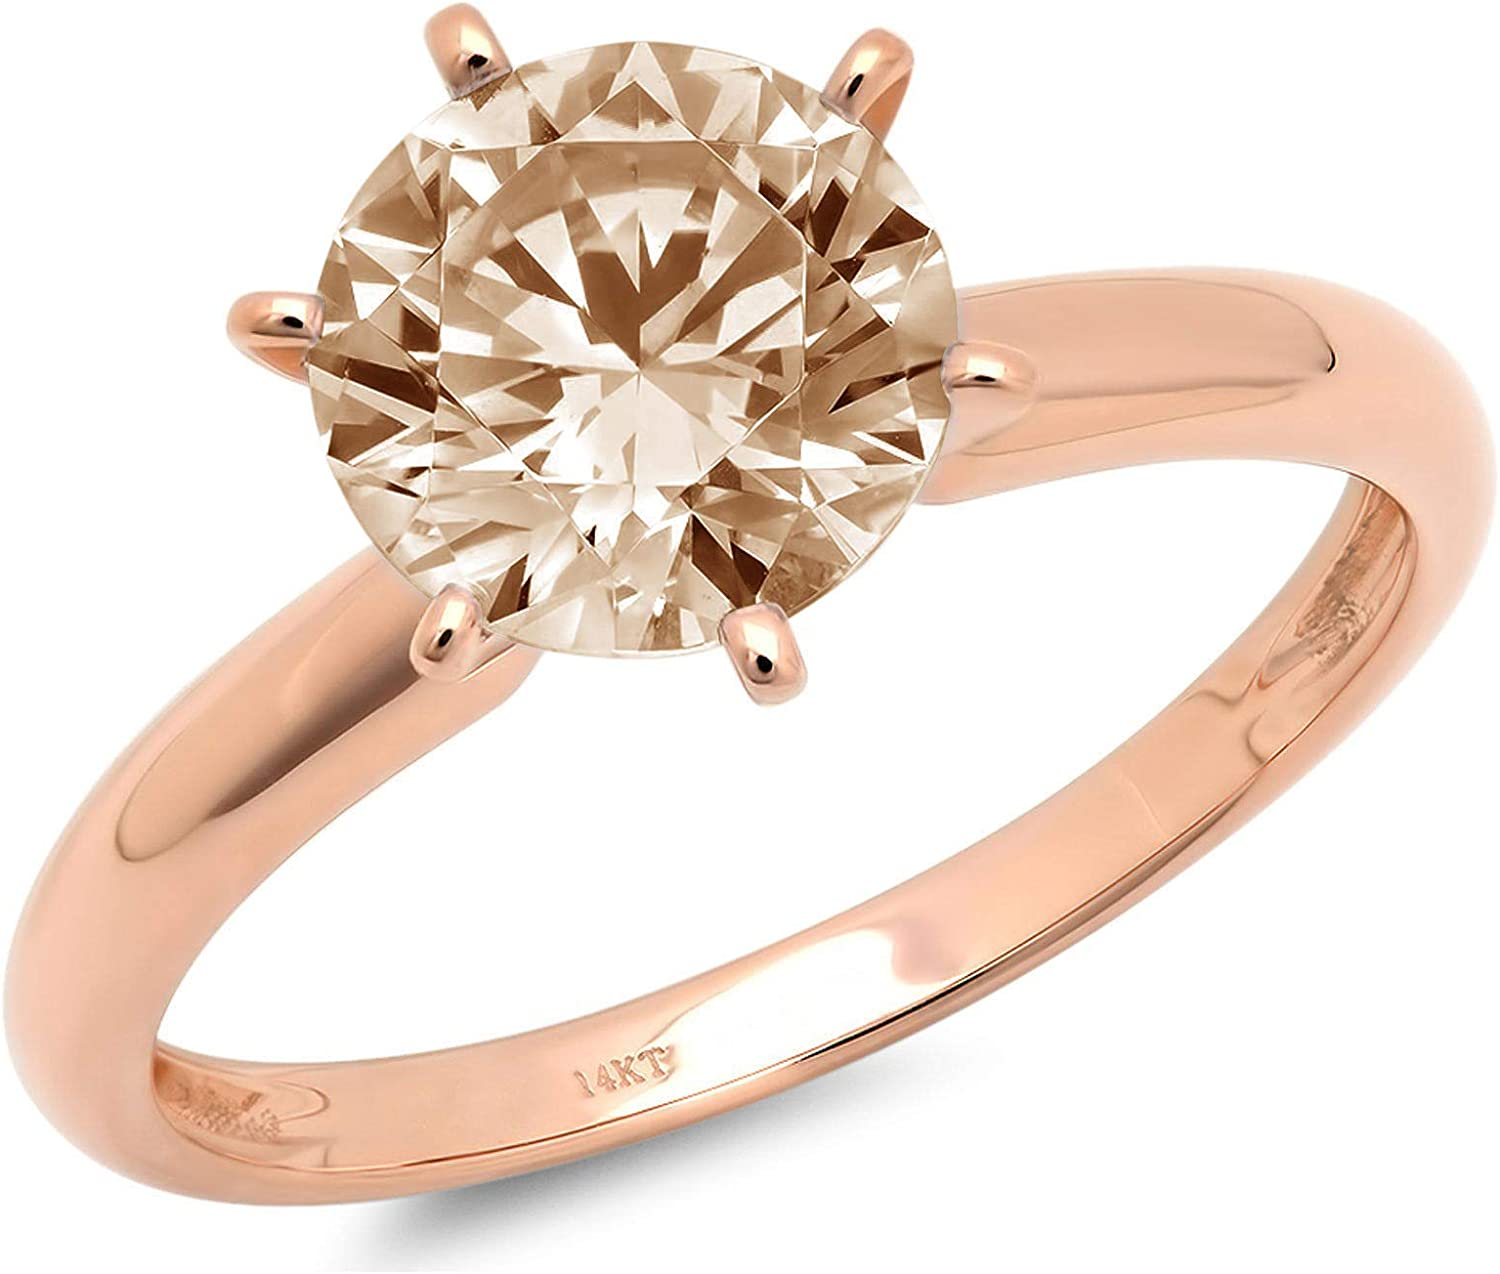 1.1 ct excellence Spasm price Brilliant Round Cut Solitaire Champagne Flawless Stunning